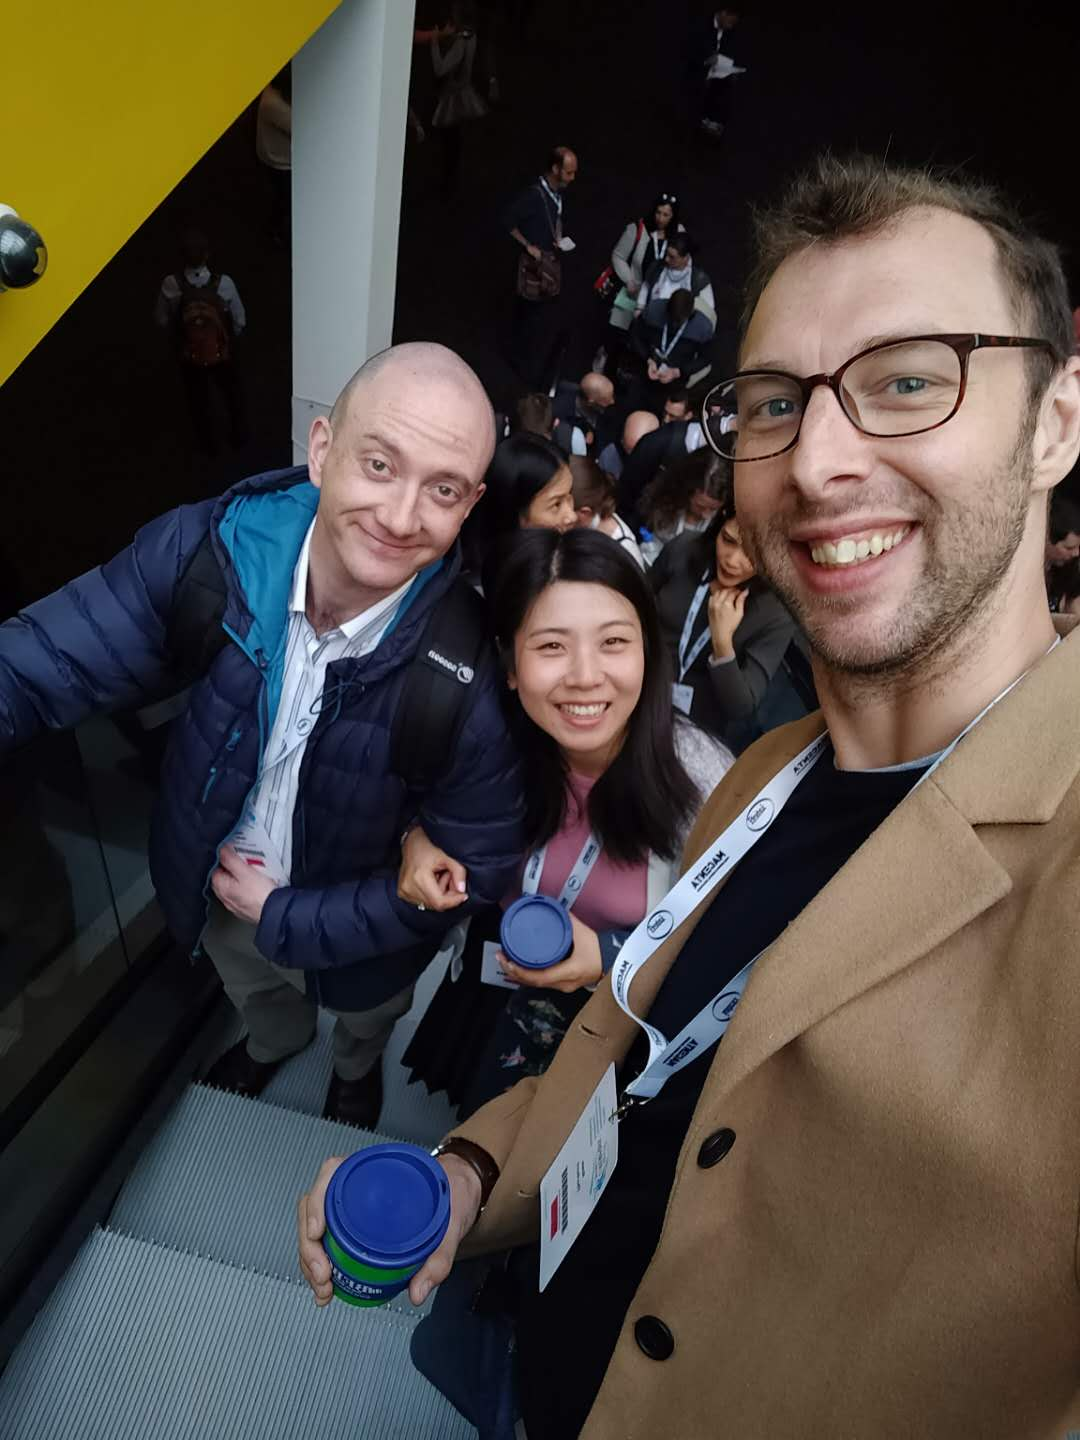 Tracy, Dave and Ross at IATEFL 2019